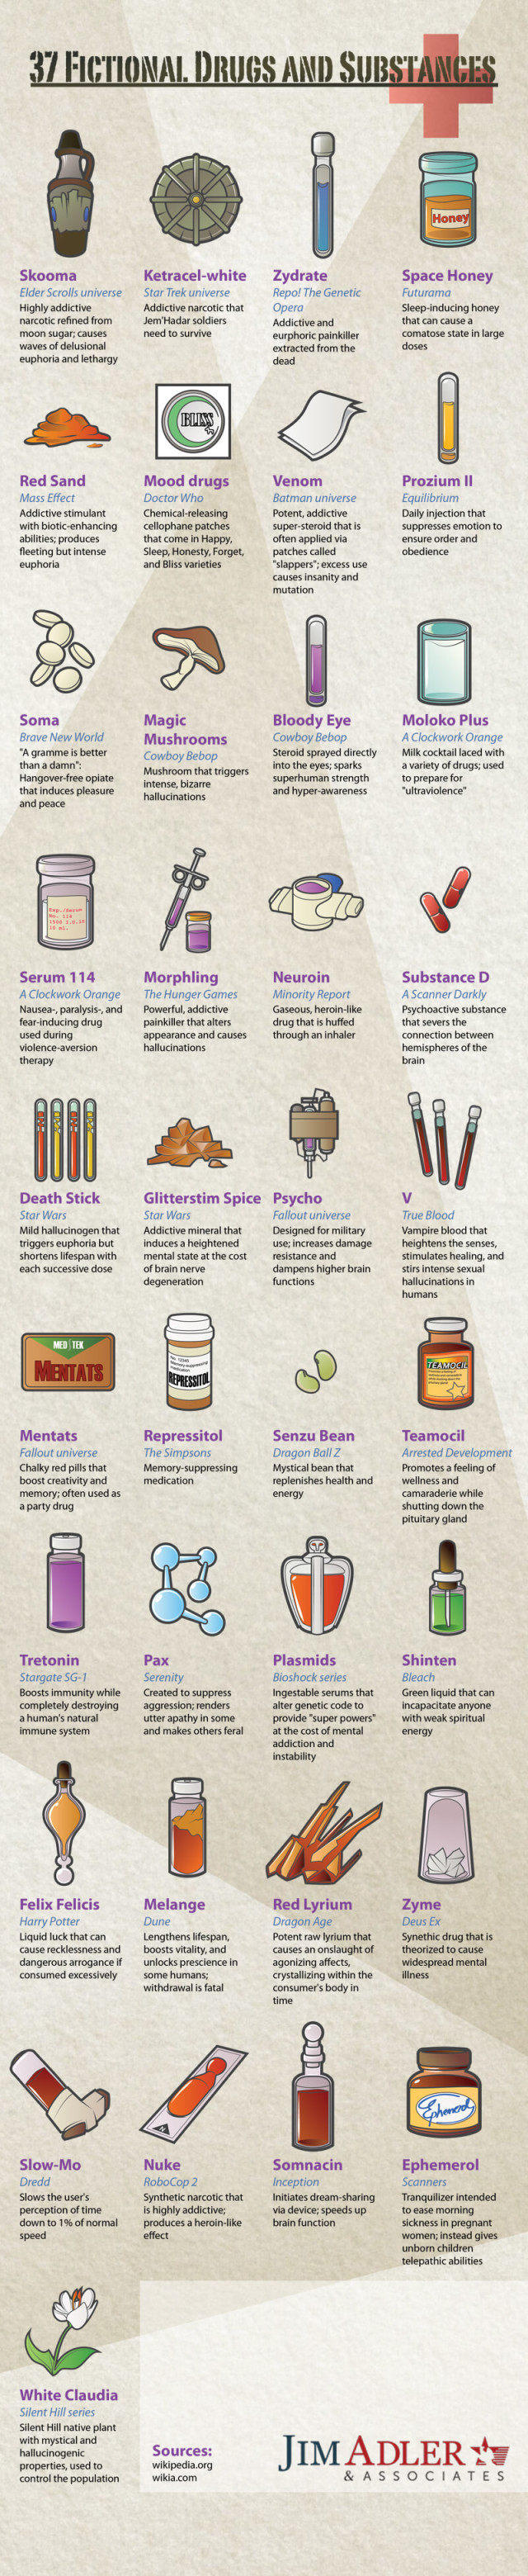 most popular fictional drugs in movies & books